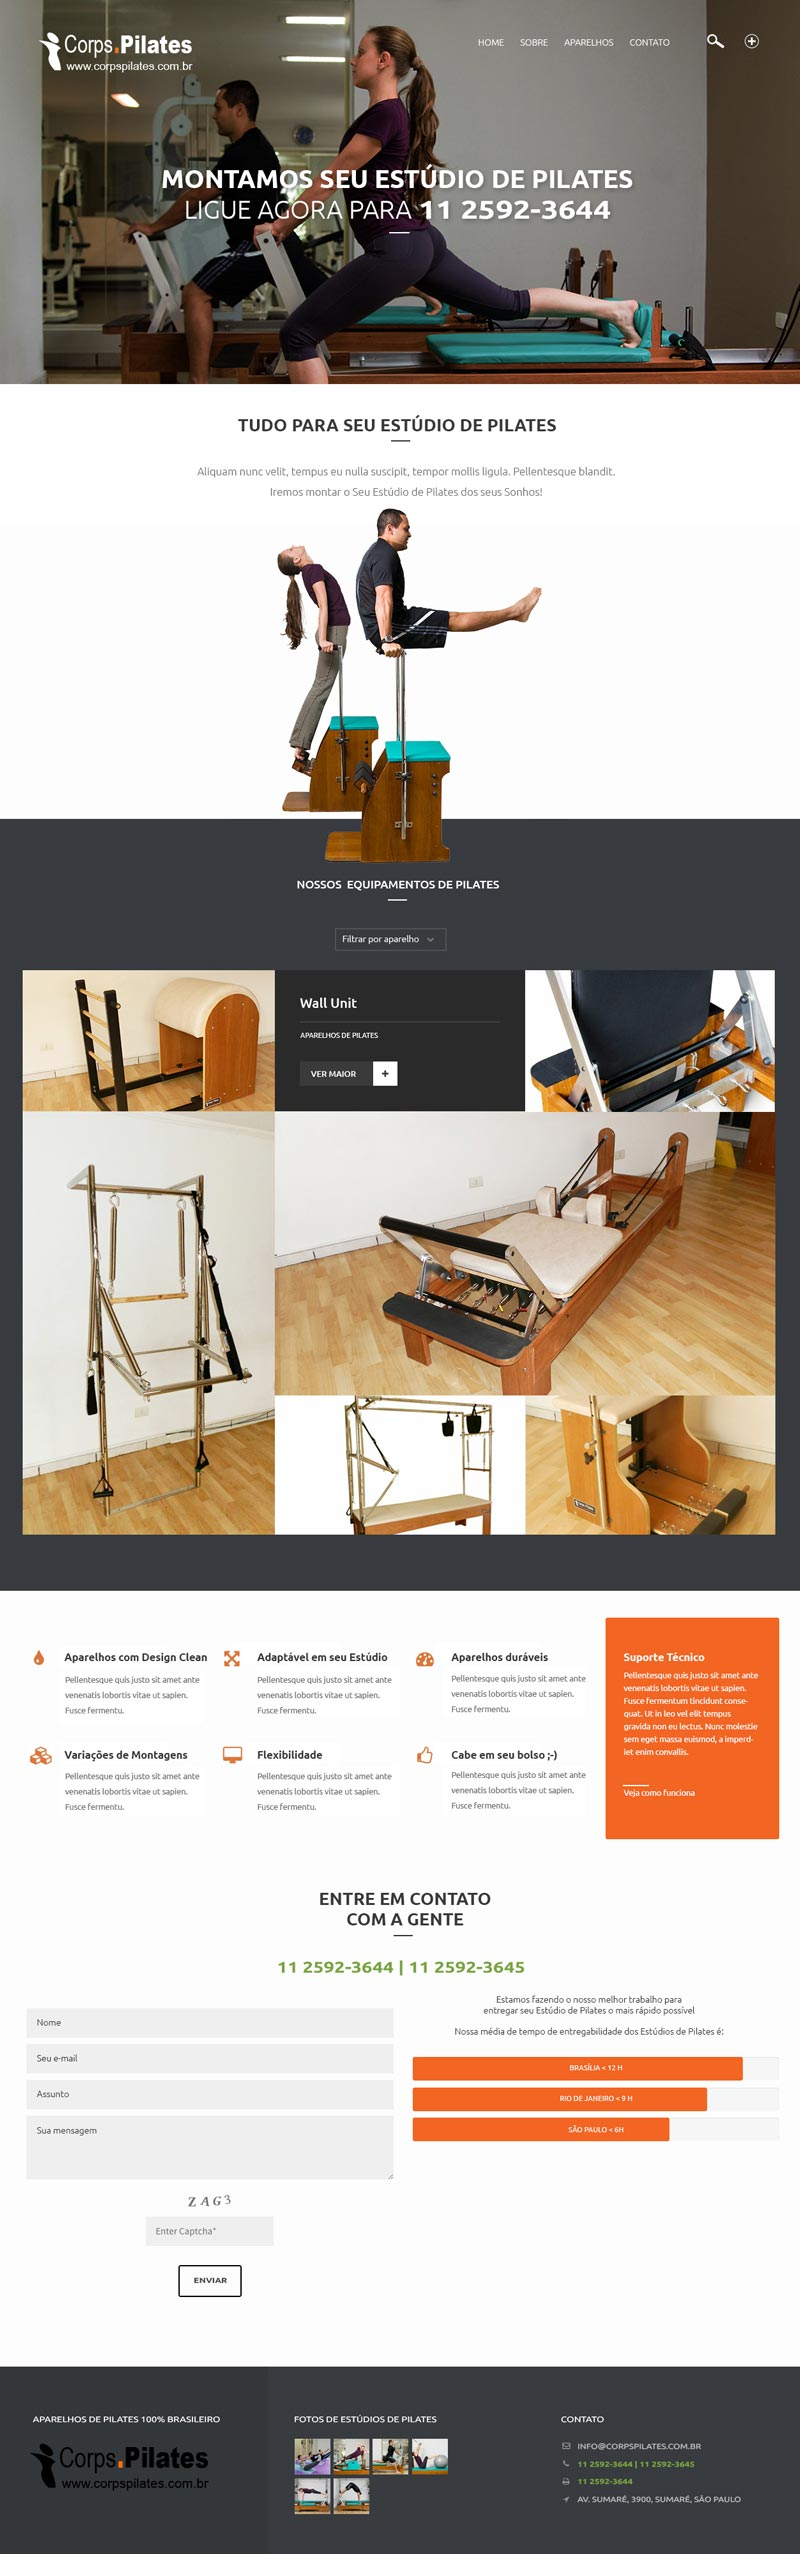 layout-corps-pilates-home-03